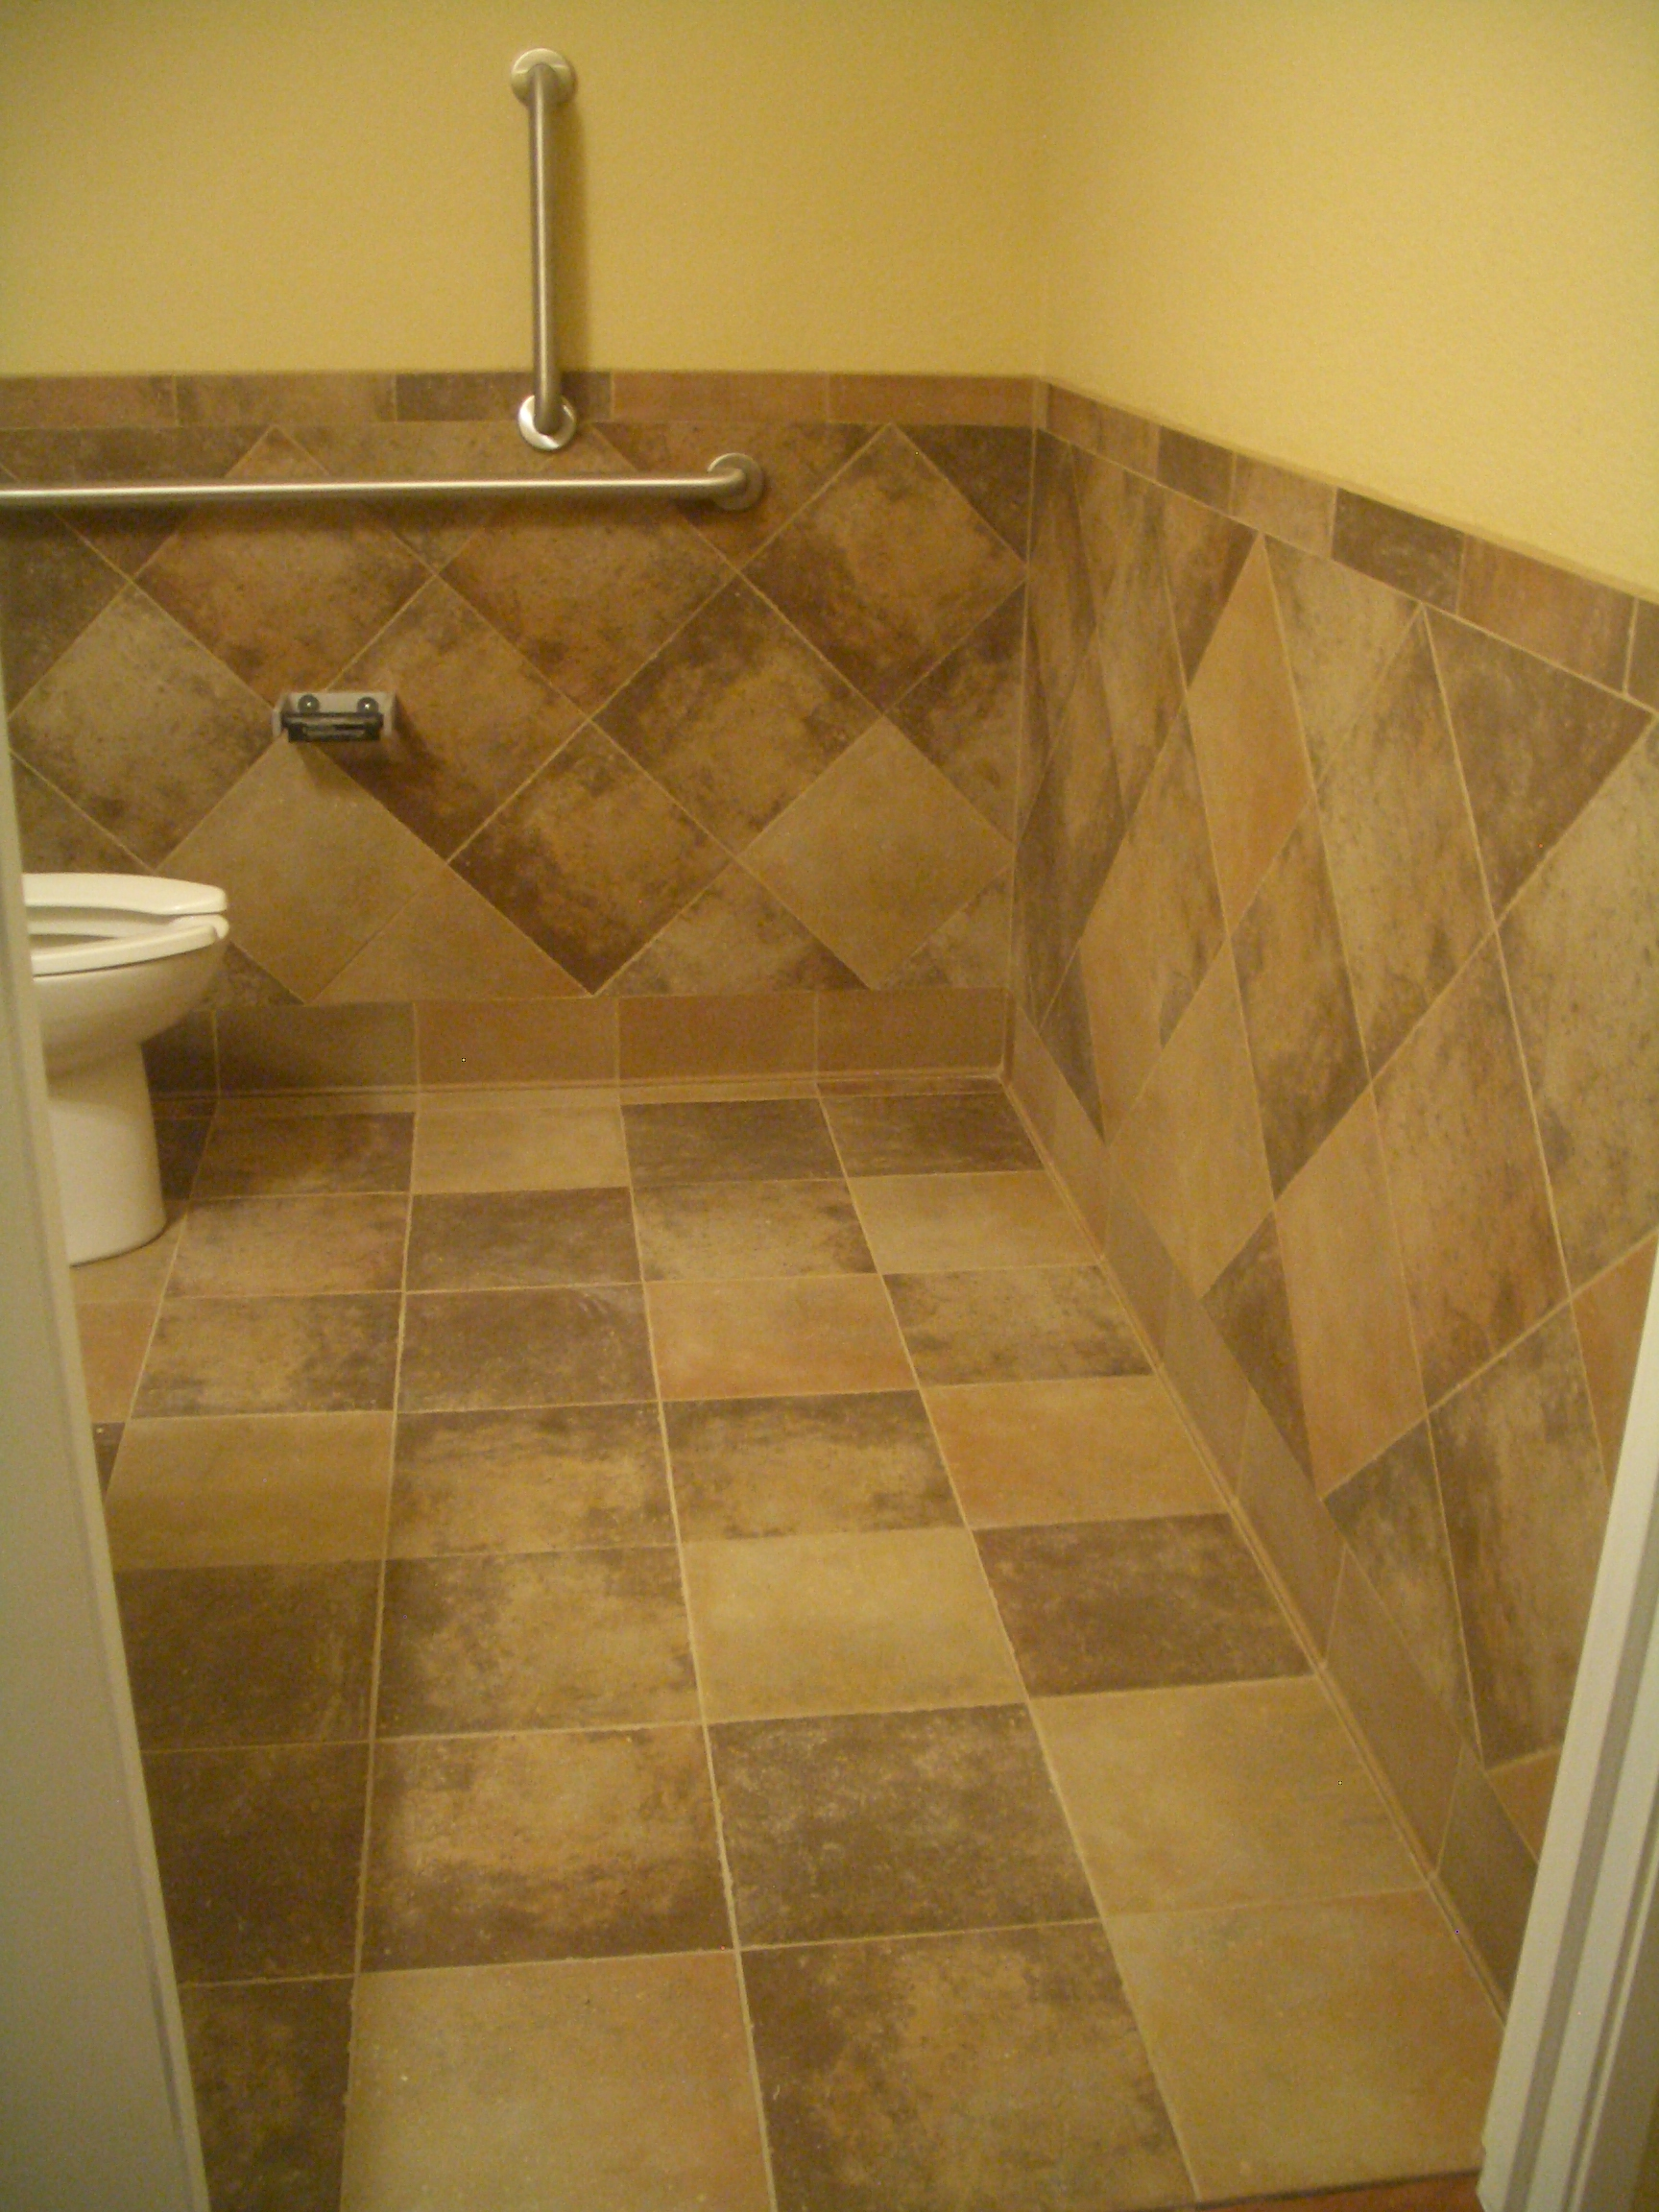 Install Bathroom Floor Underlayment : Bathroom floor underlay floors